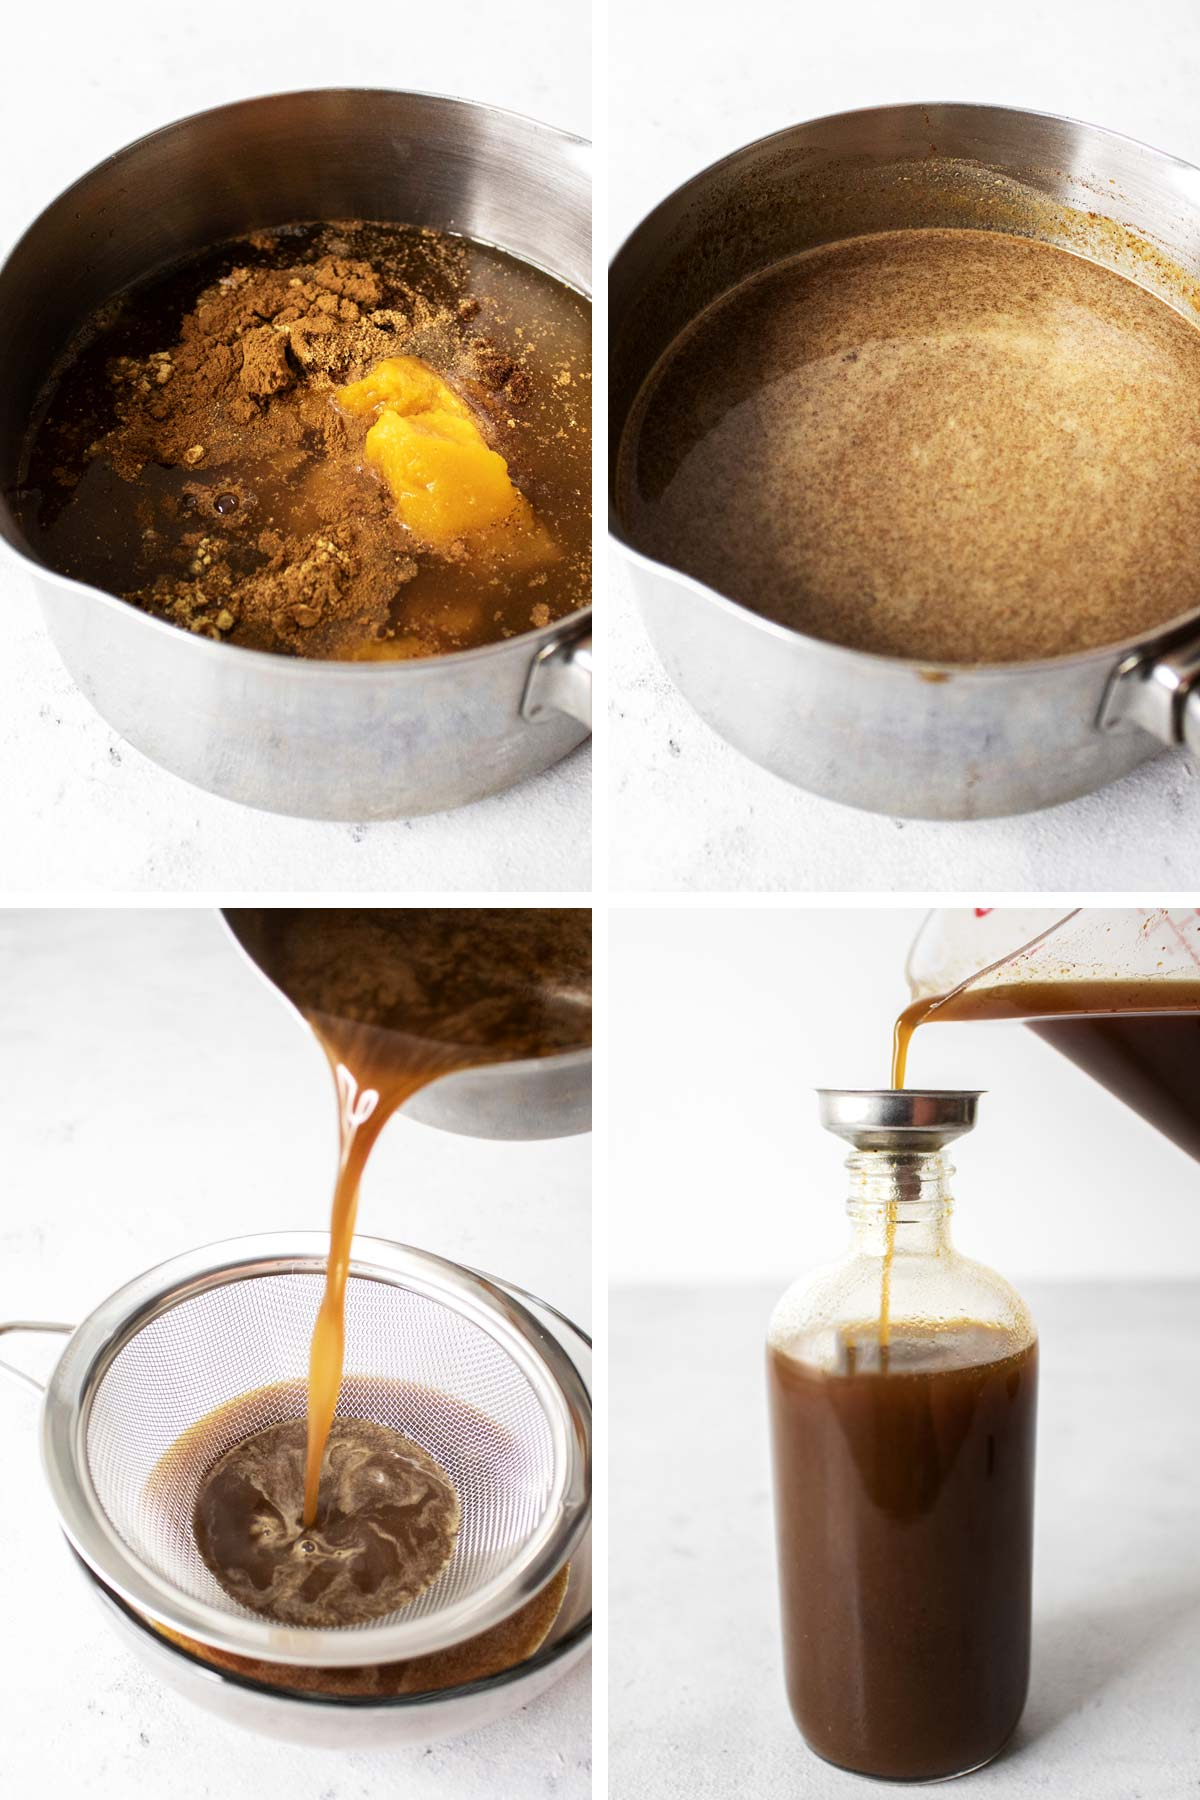 4 photos showing how to make pumpkin spice syrup.